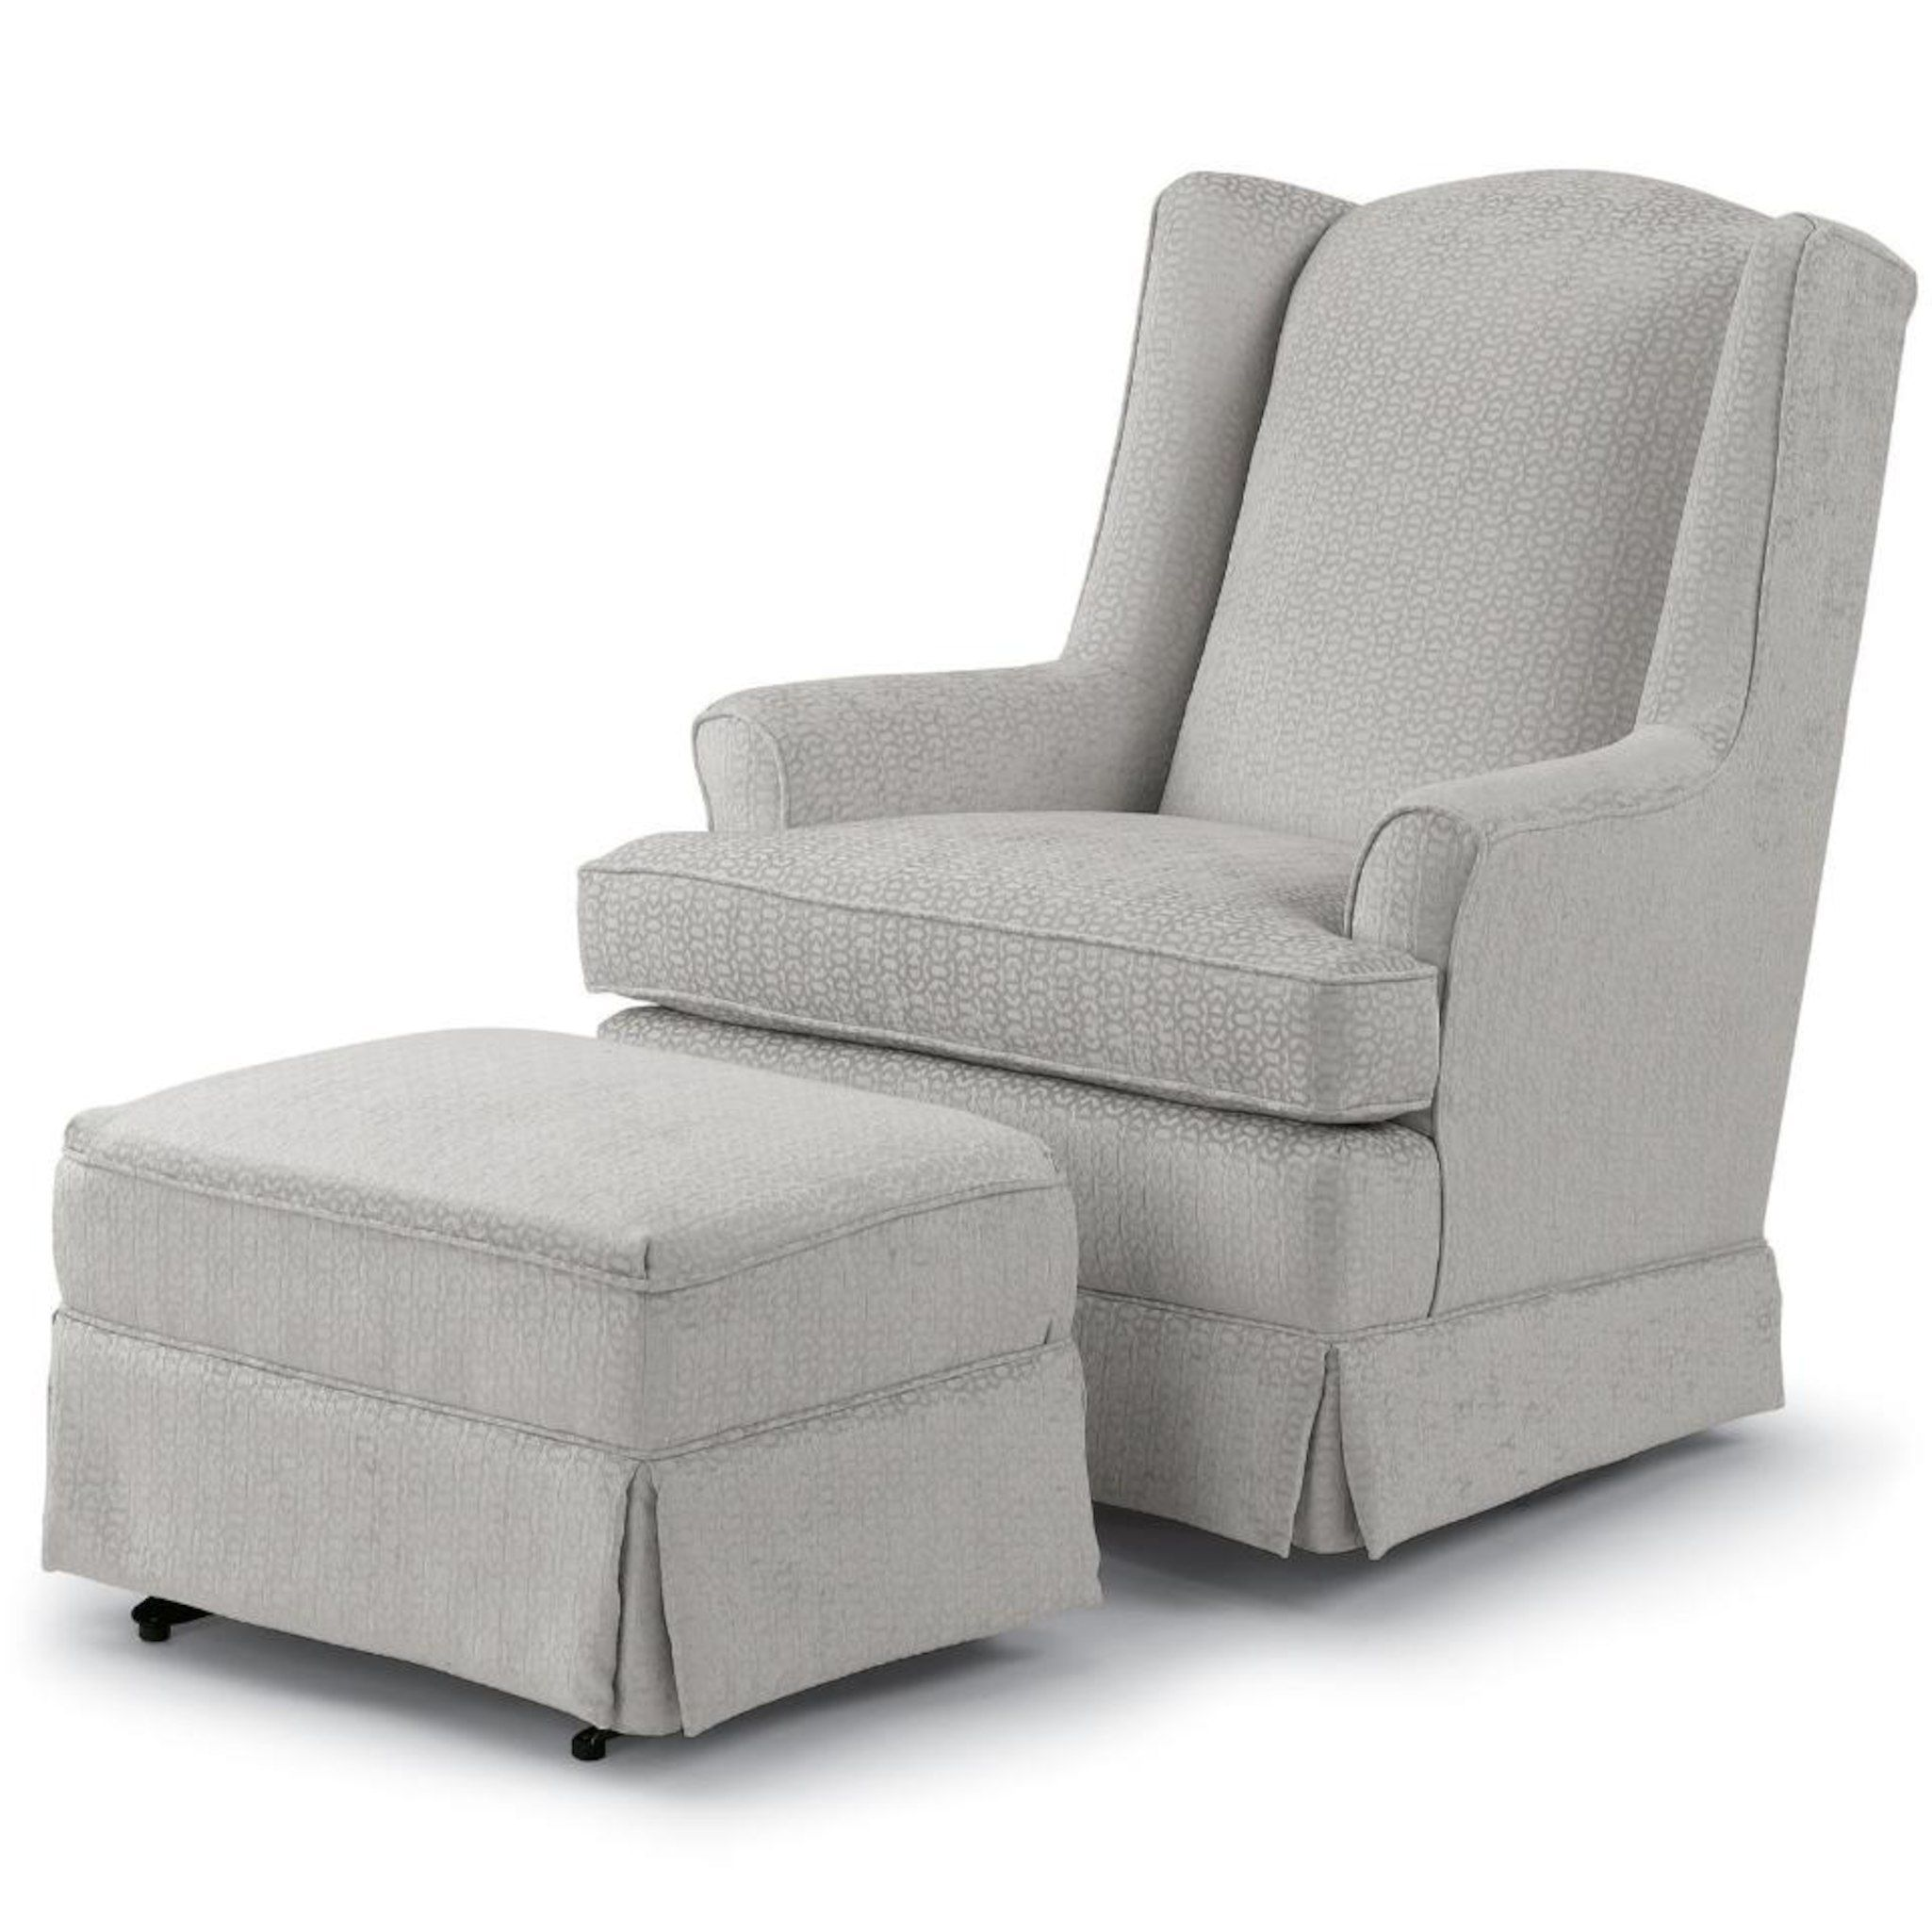 Awesome Best Chairs Sutton Swivel Glider Moondust Babys R Us Gamerscity Chair Design For Home Gamerscityorg